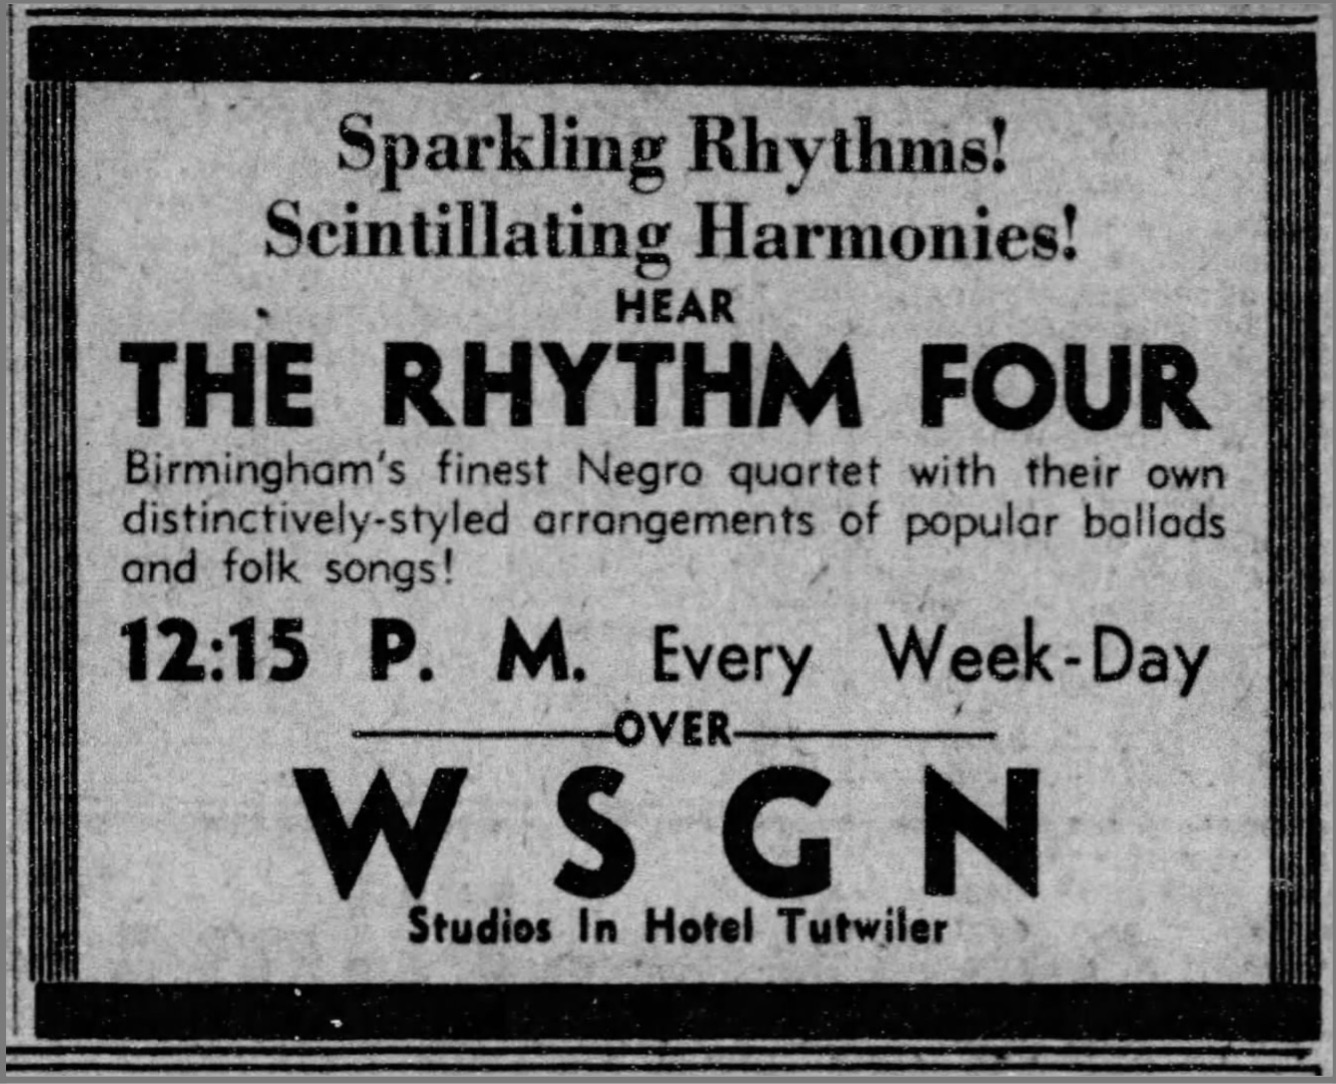 Great Rhythm Four ad 1939